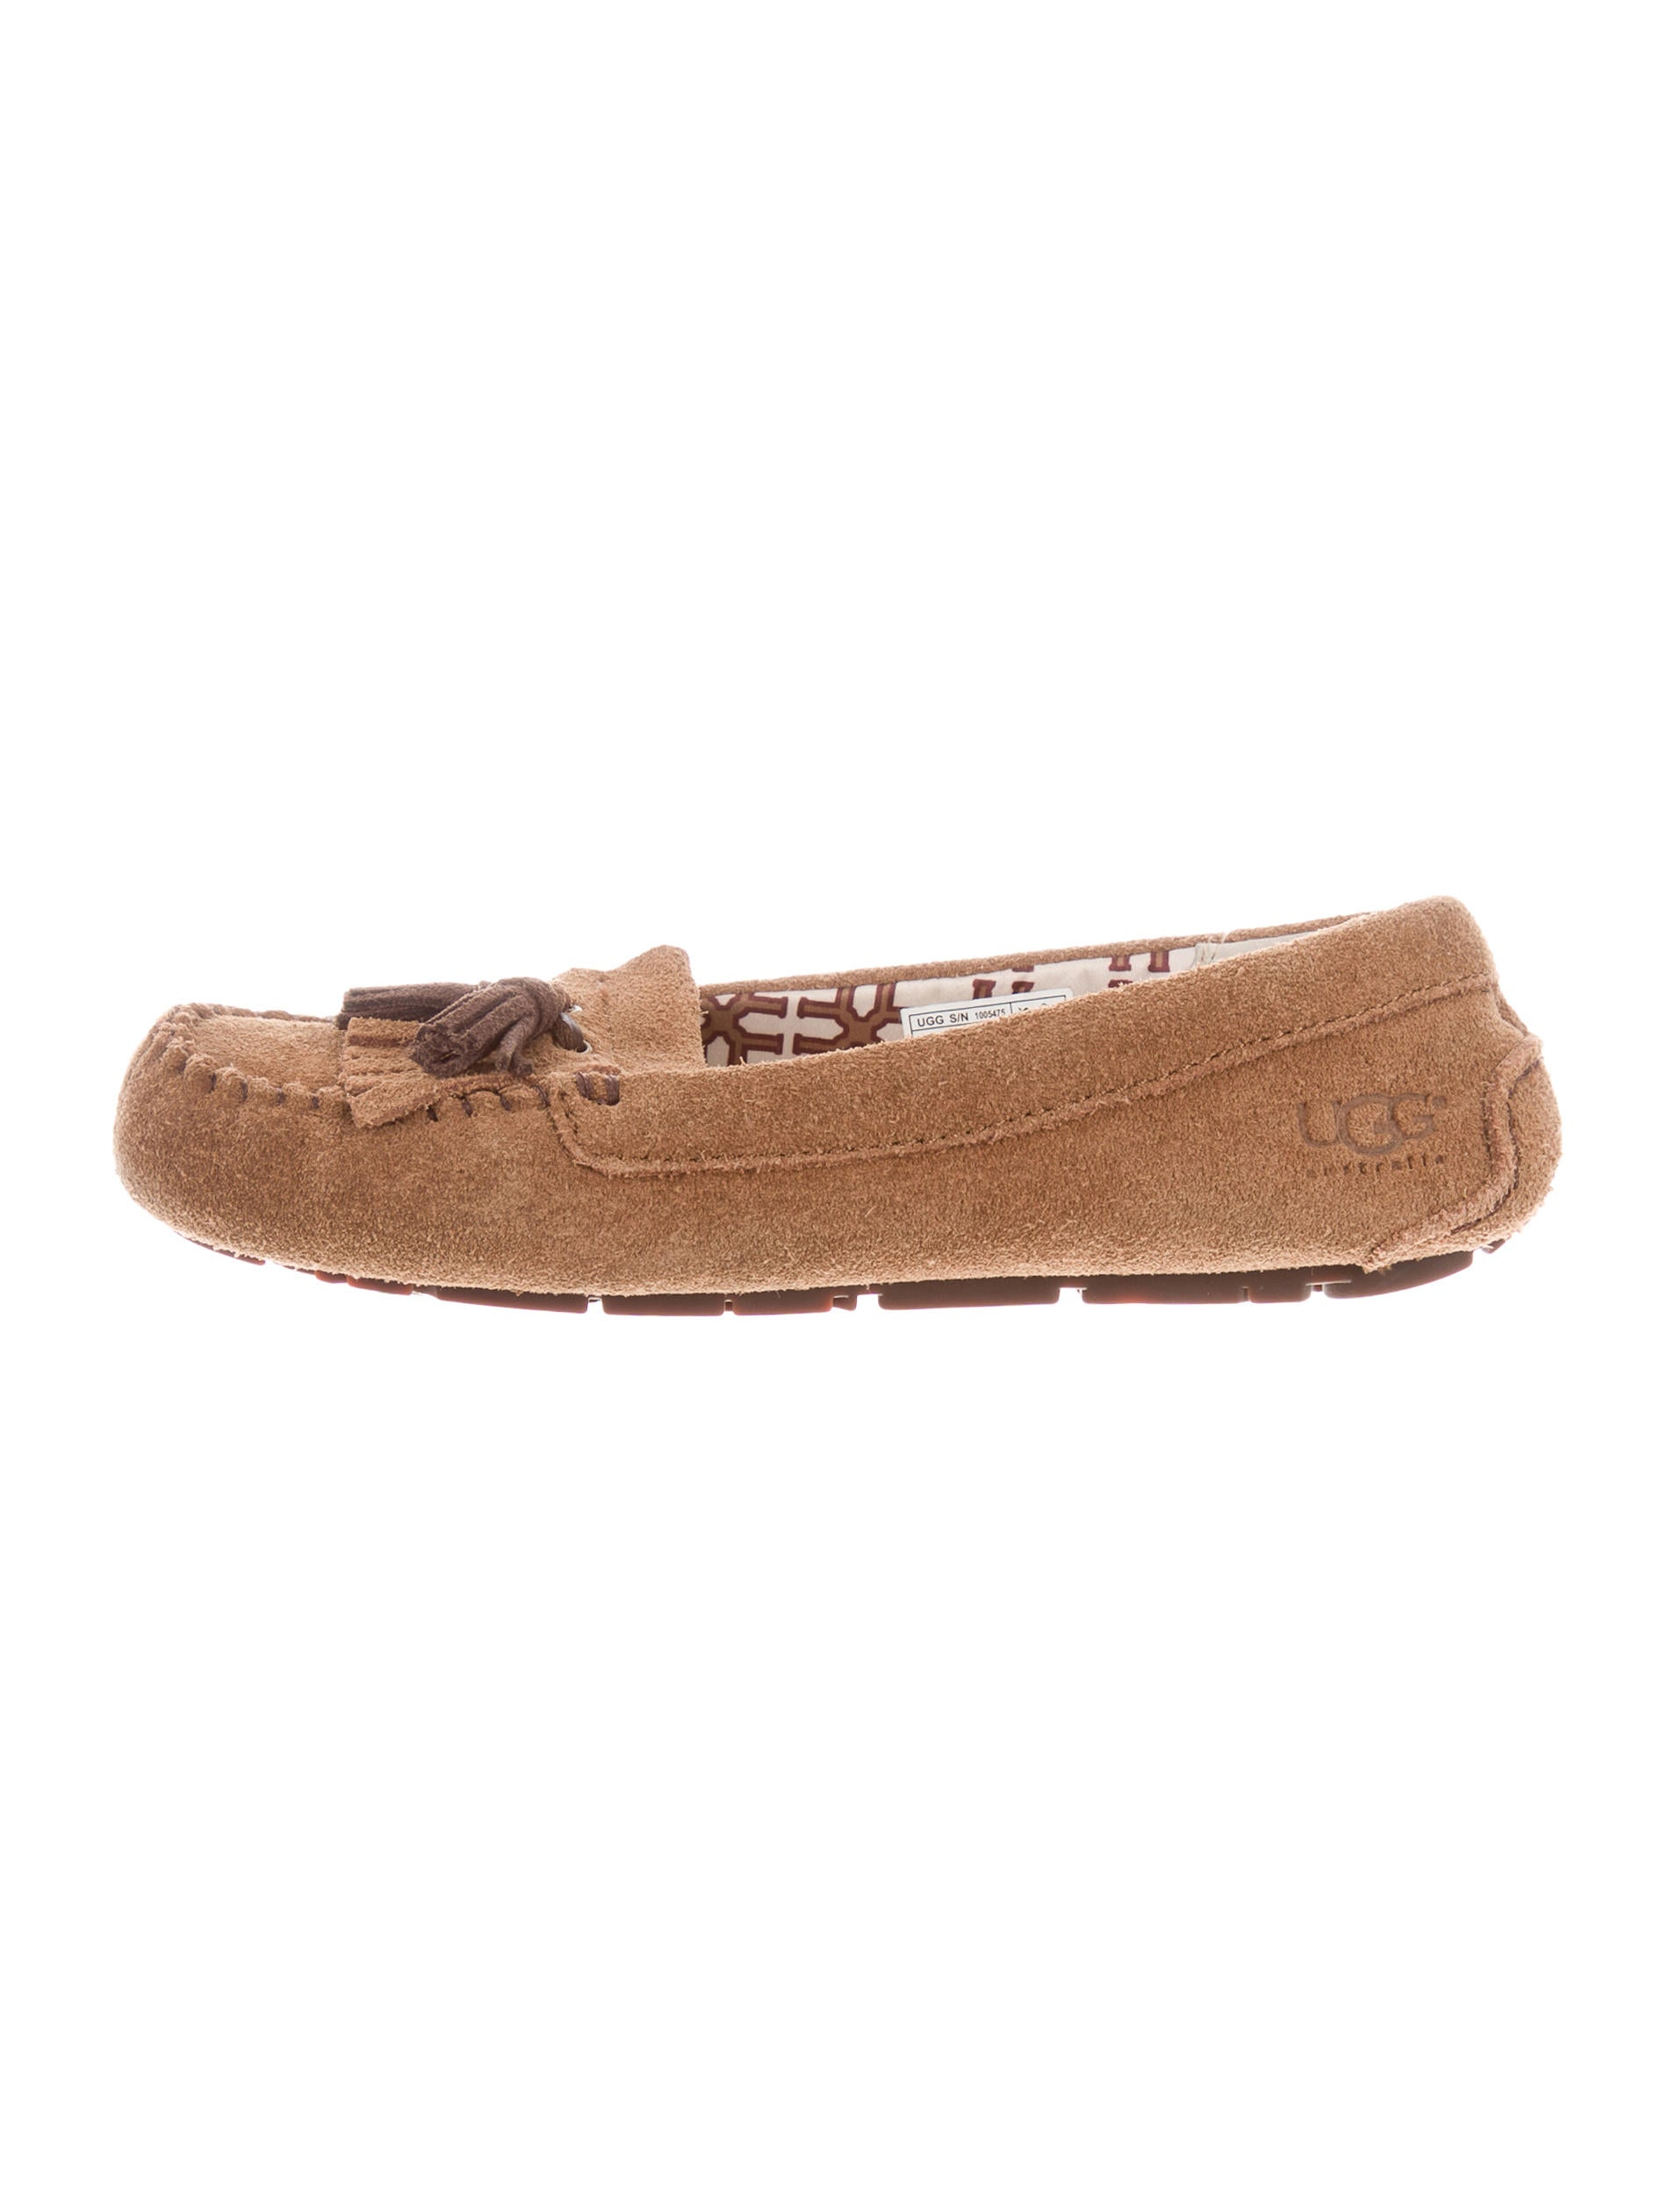 7c5da6bdd98 UGG Australia Lizzy Moccasin Slippers - Shoes - WUUGG22622